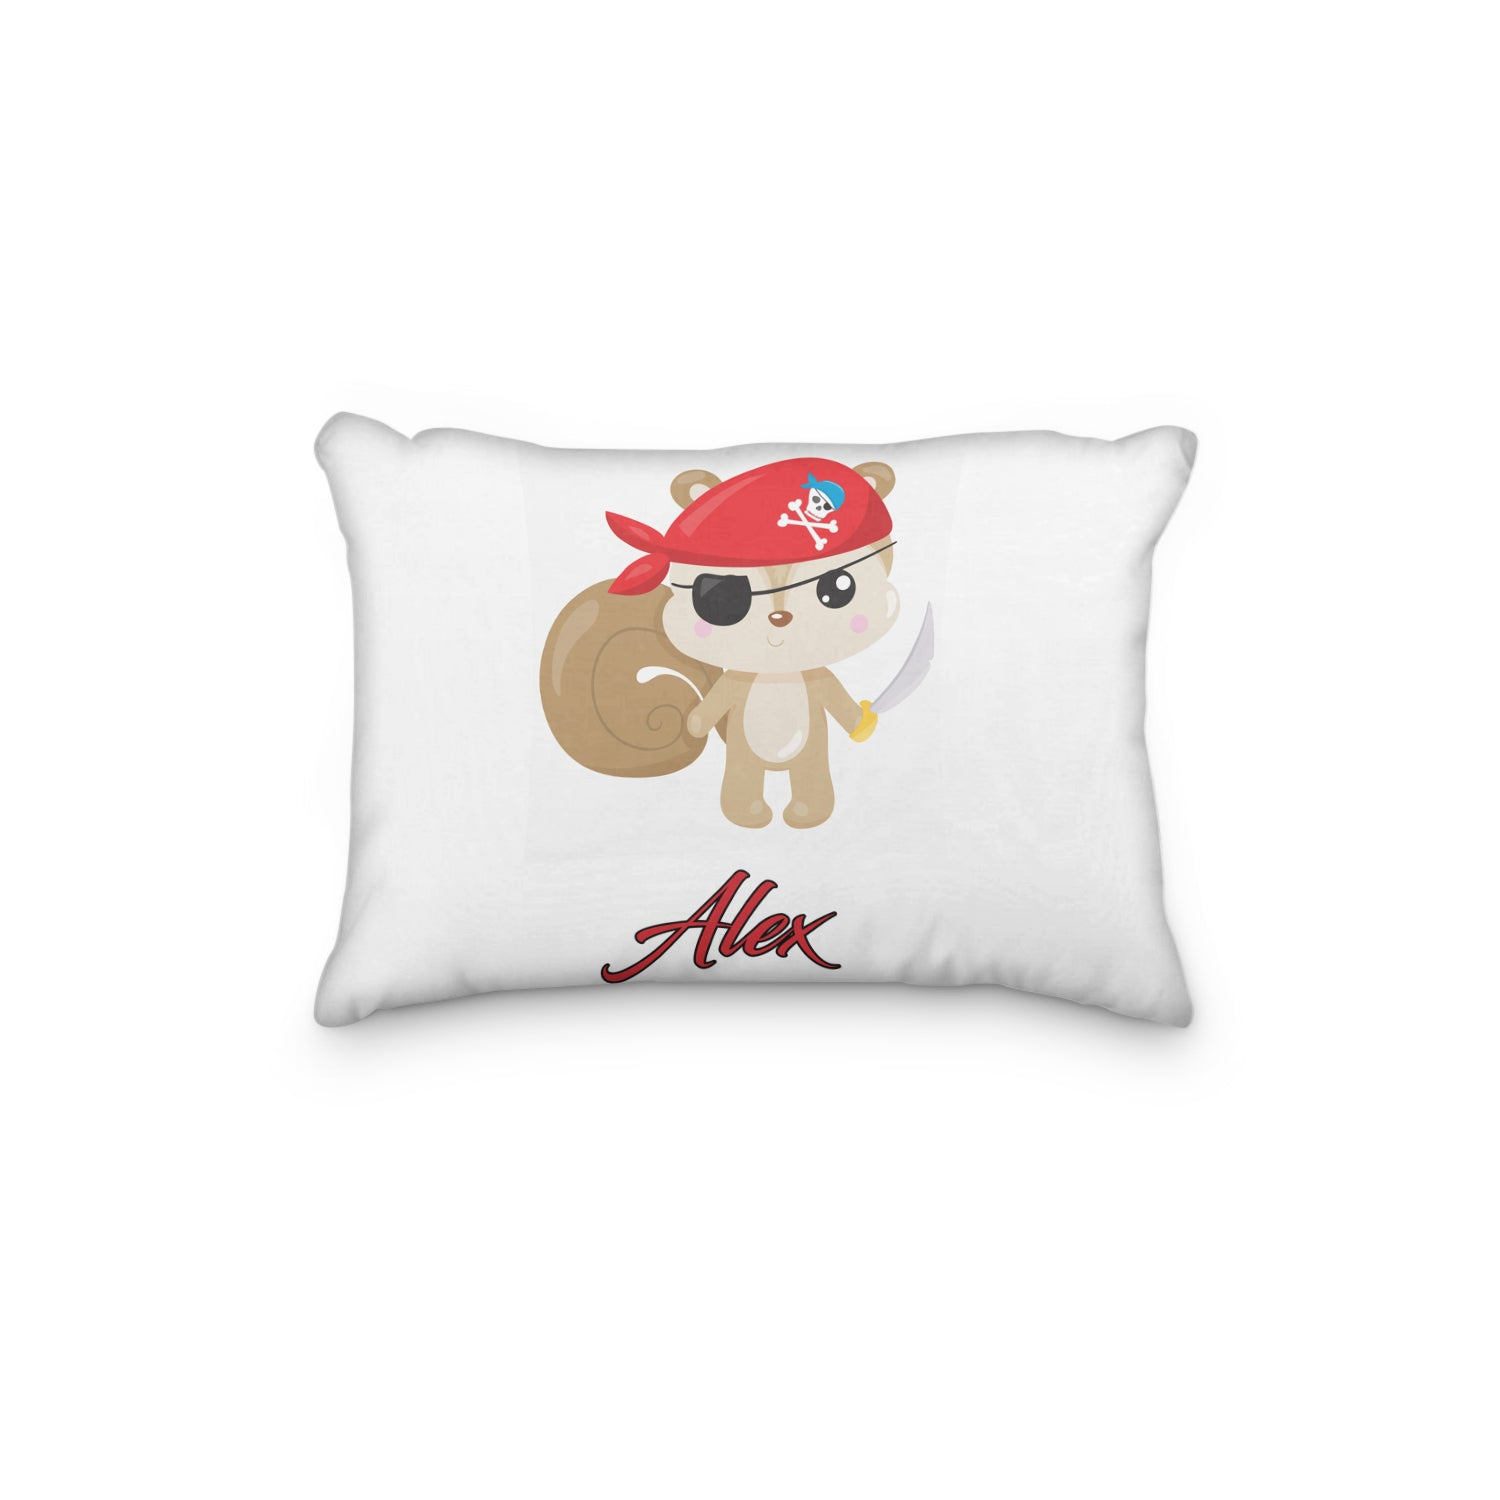 Squirrel Pirate Personalized Pillowcase - Incandescently